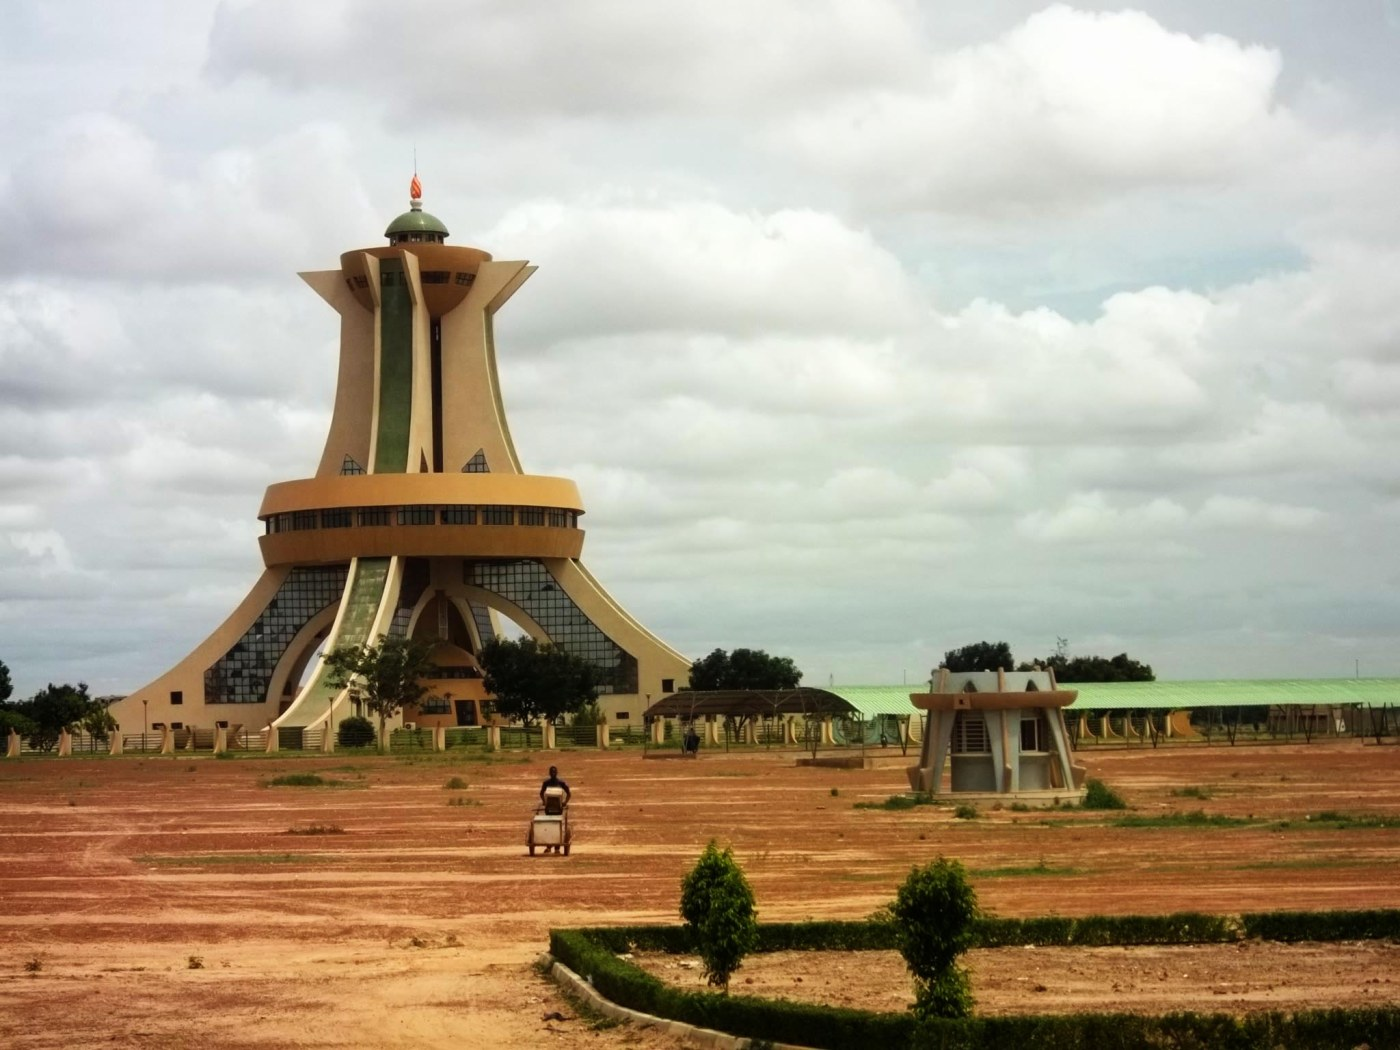 Monument of the Martyrs  at the roundabout at Ouaga2000 - at the Boulavard de Kadaffi